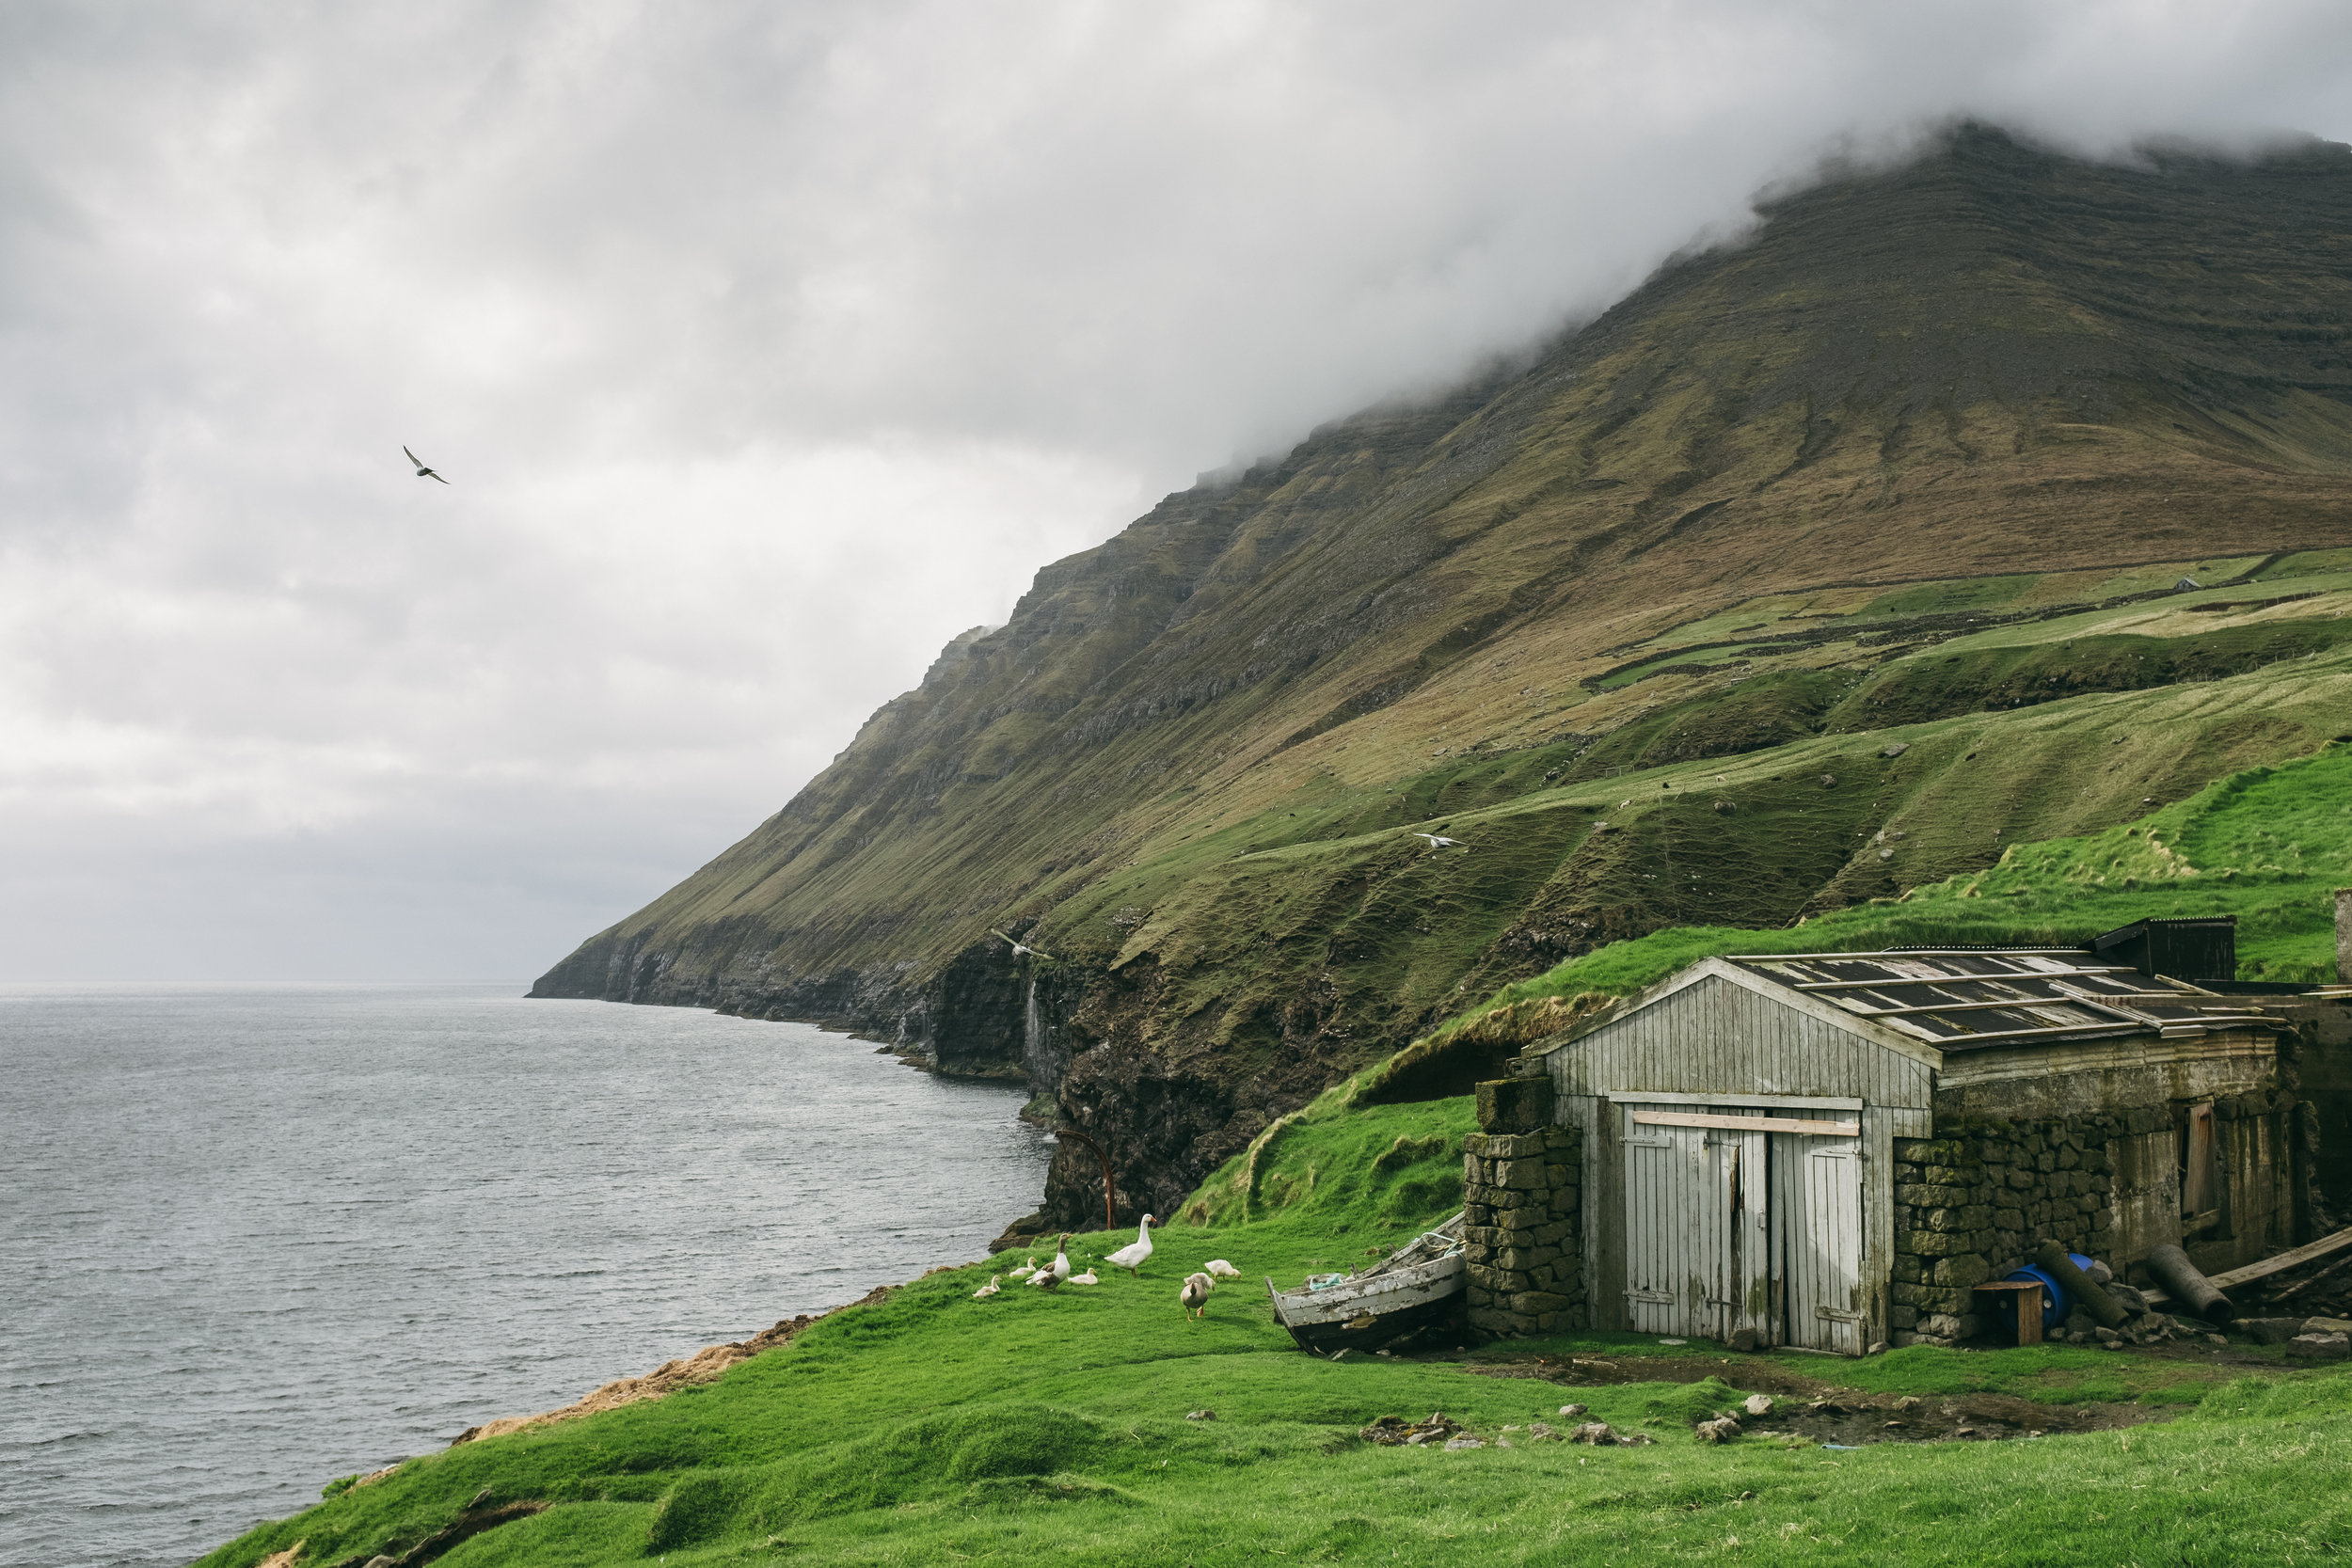 Faroe Islands F-20170523-708.jpg